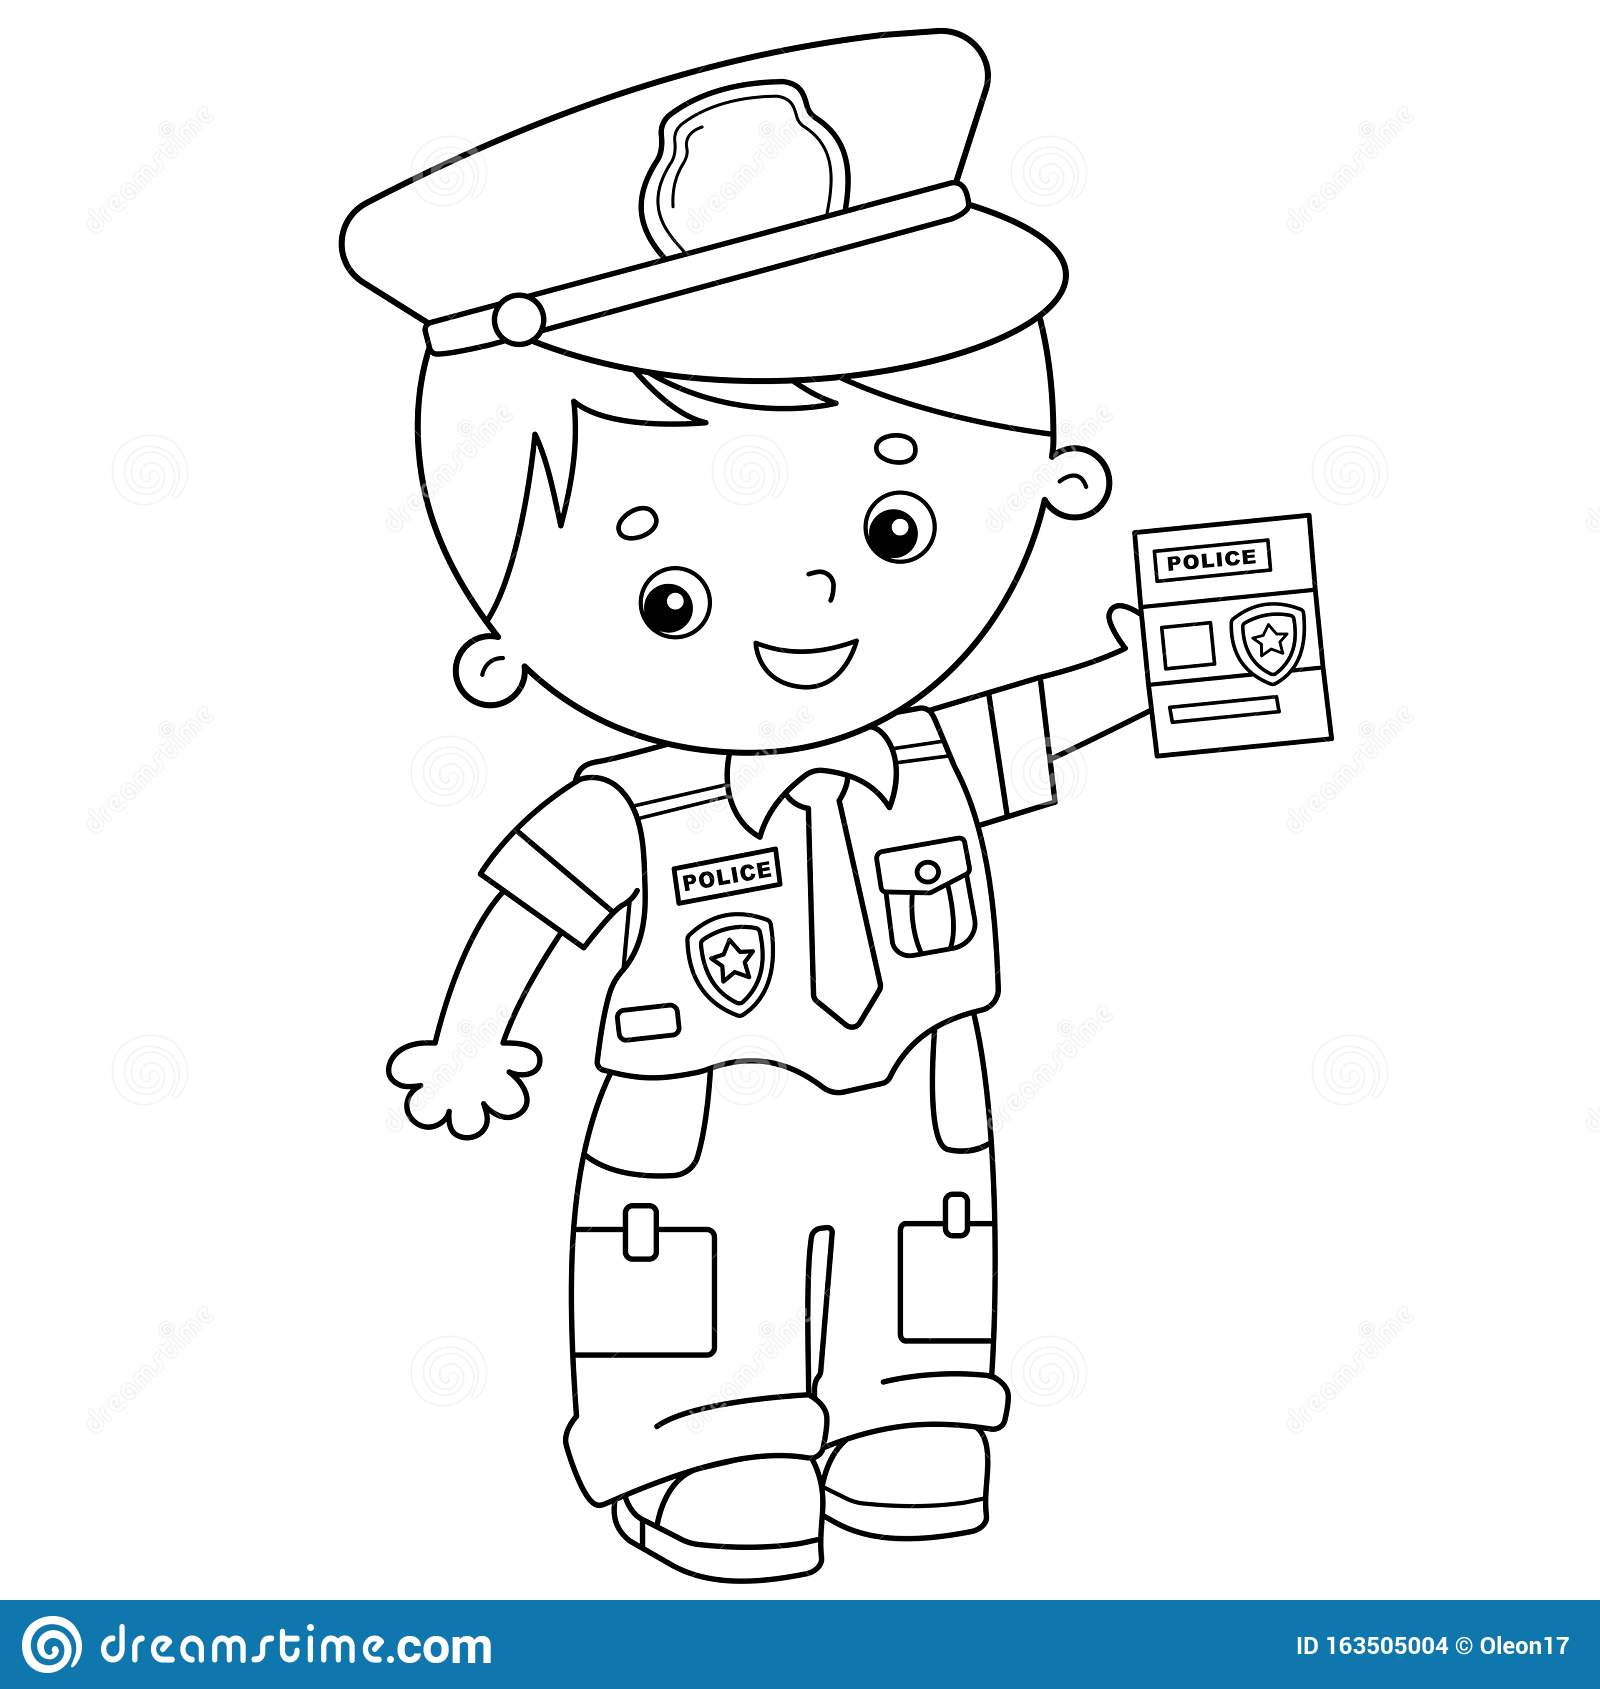 - Coloring Page Outline Of Cartoon Policeman. Profession - Police